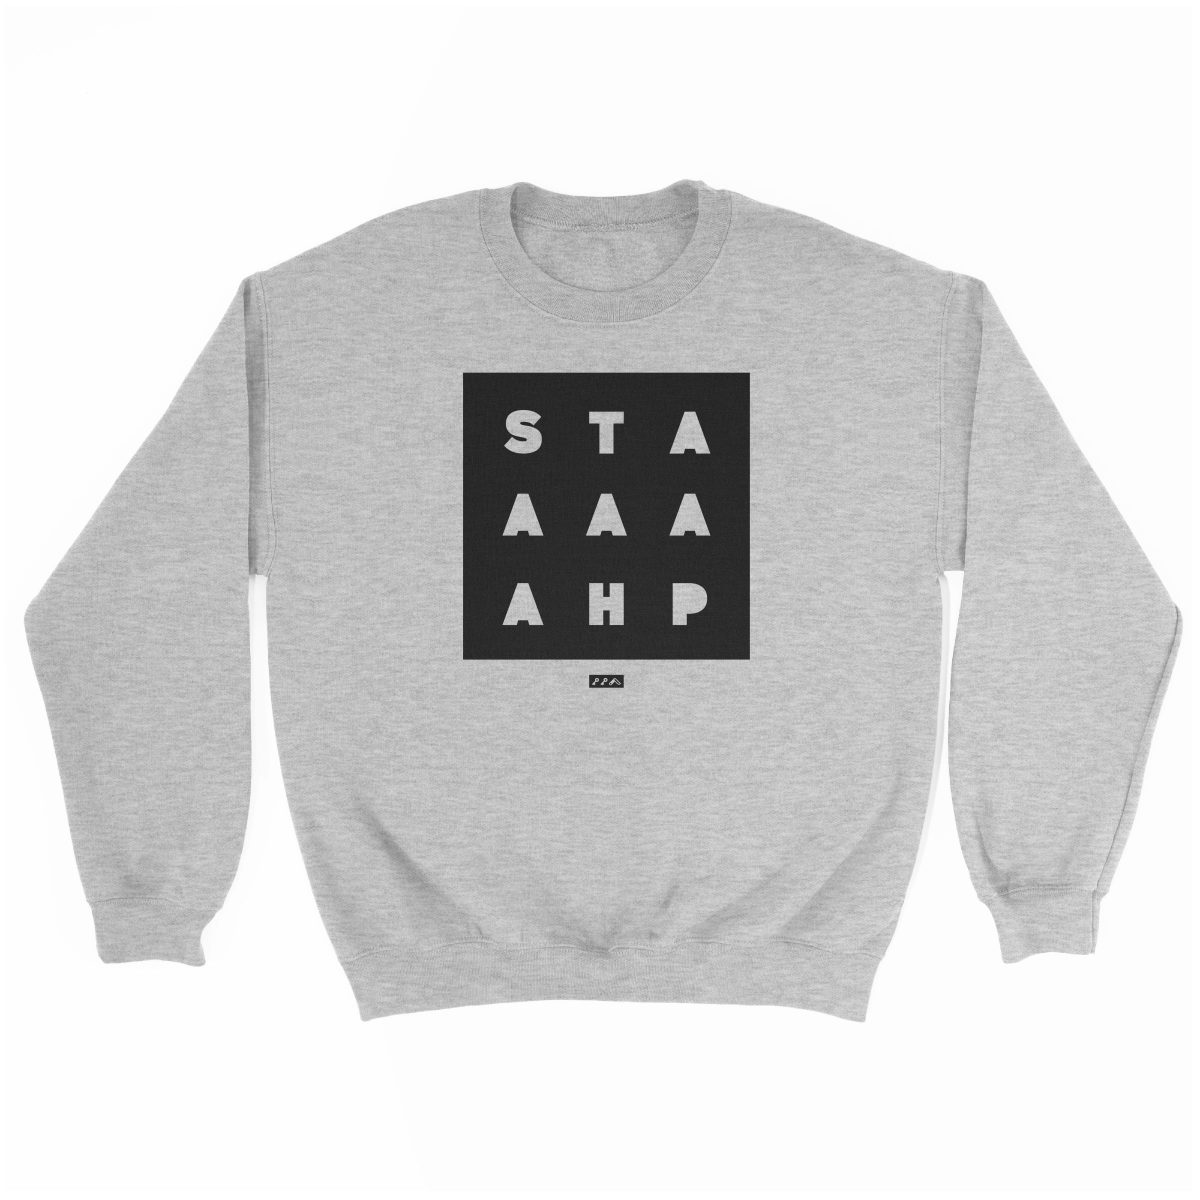 """STAAAAAHP"" funny philly slang sweatshirt in grey"